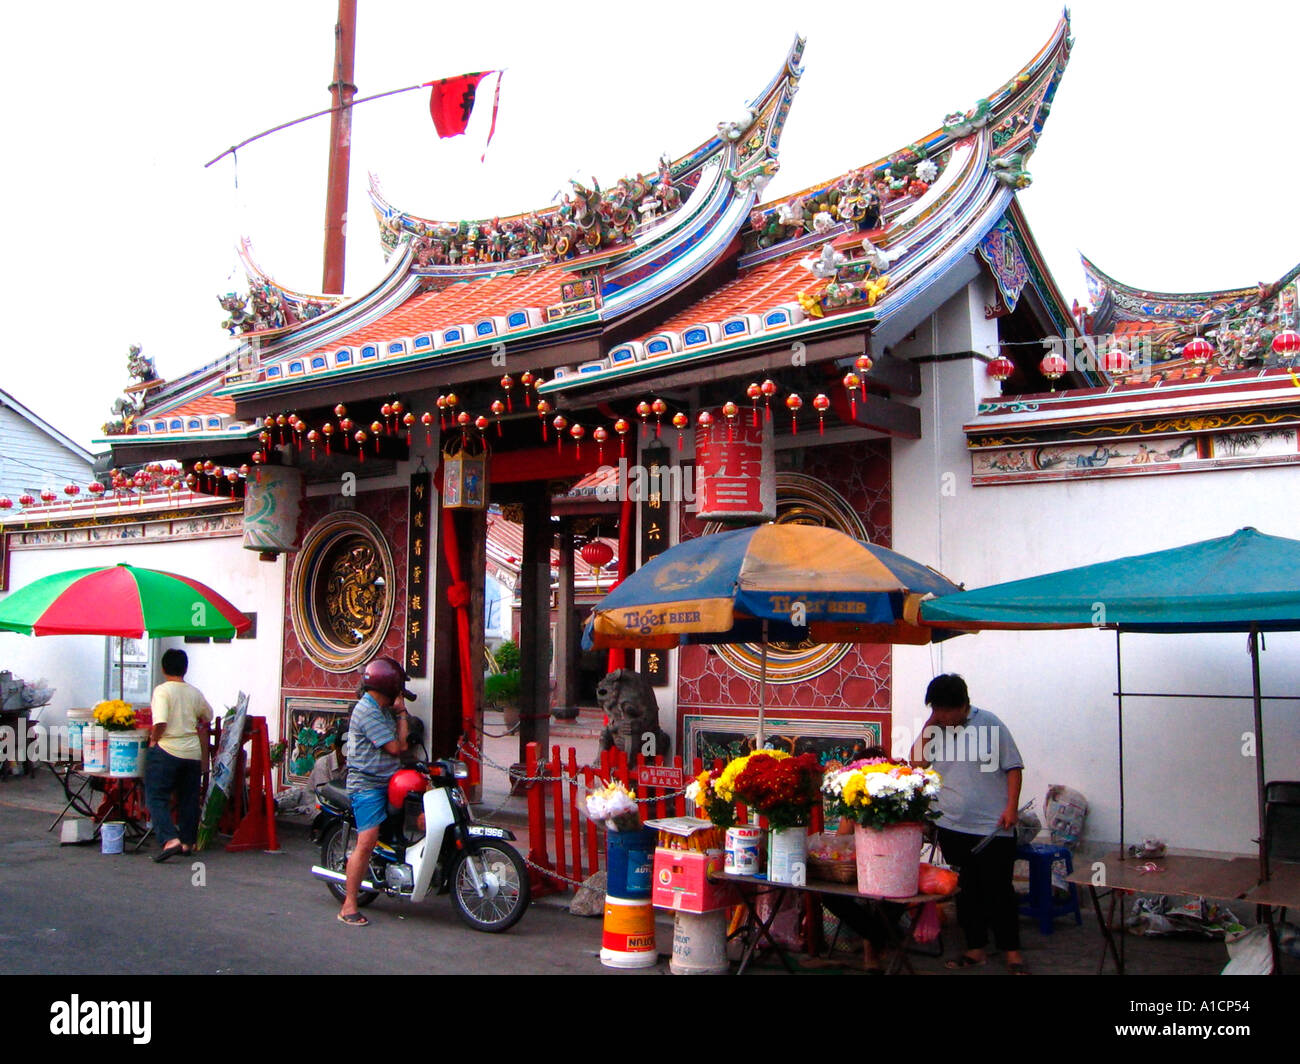 Oldest Chinese Temple In Malaysia   th Century Cheng Hoon Teng     Alamy